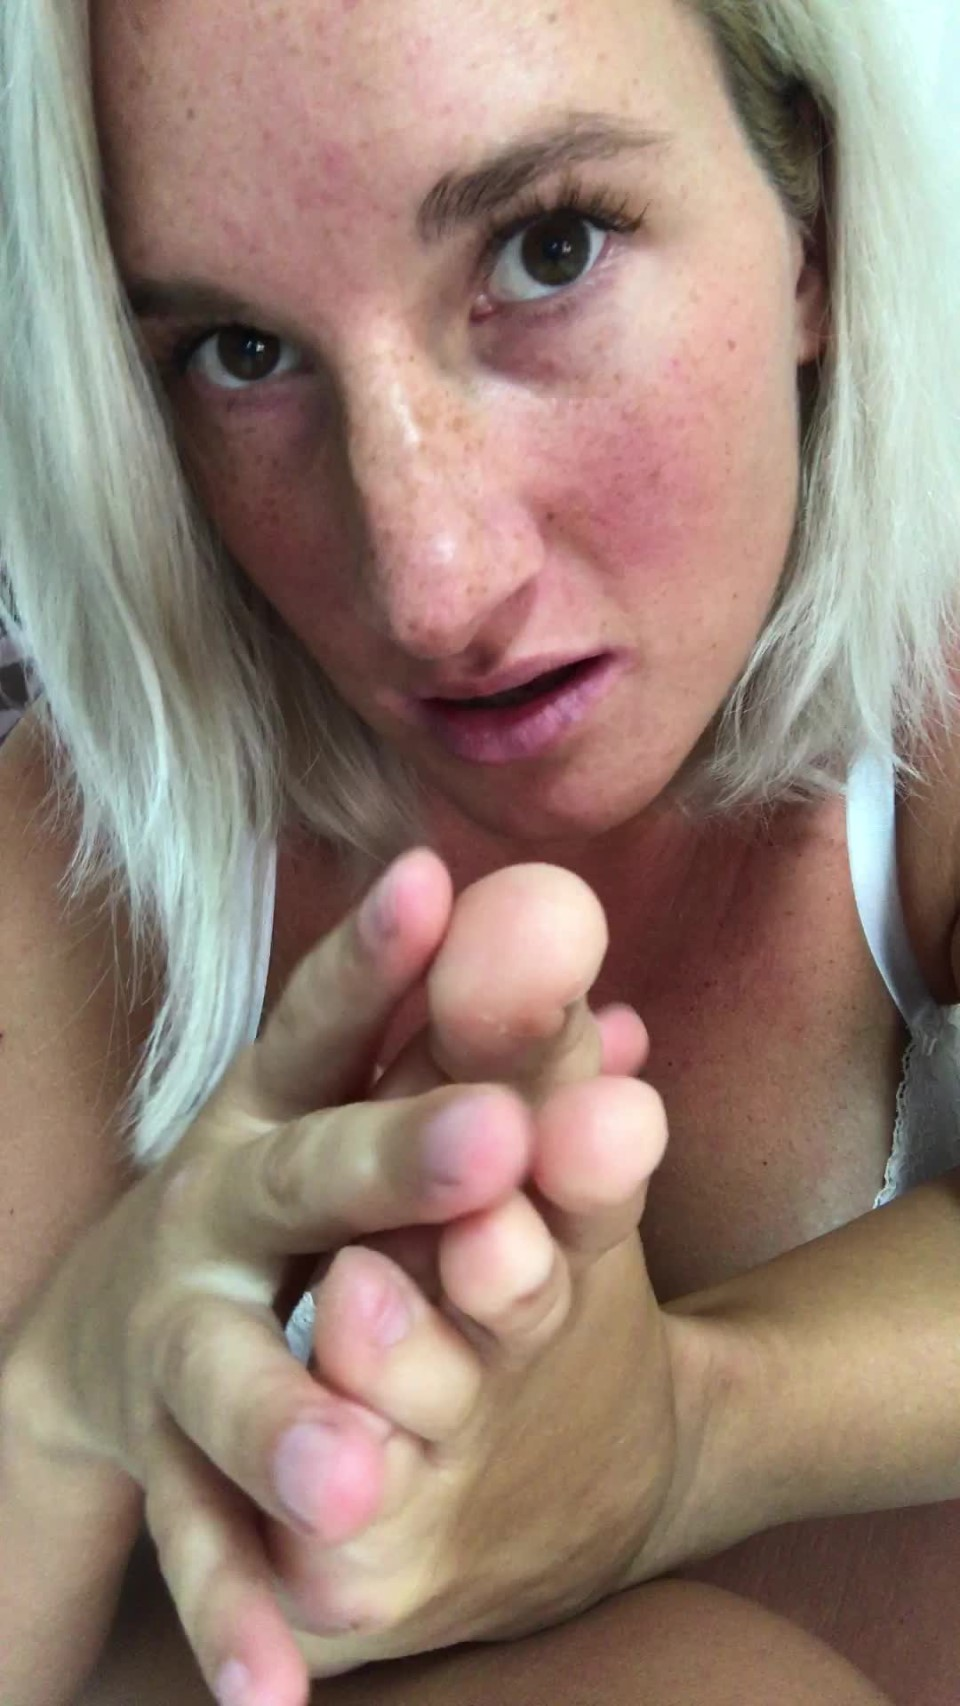 [Full HD] 8Cherry8Girl8 Foot Fetish Video Hd 8Cherry8Girl8 - ManyVids-00:06:07 | Foot Fetish,Highly Arched Feet,Toe Fetish,Toe Sucking,Feet - 684,5 MB